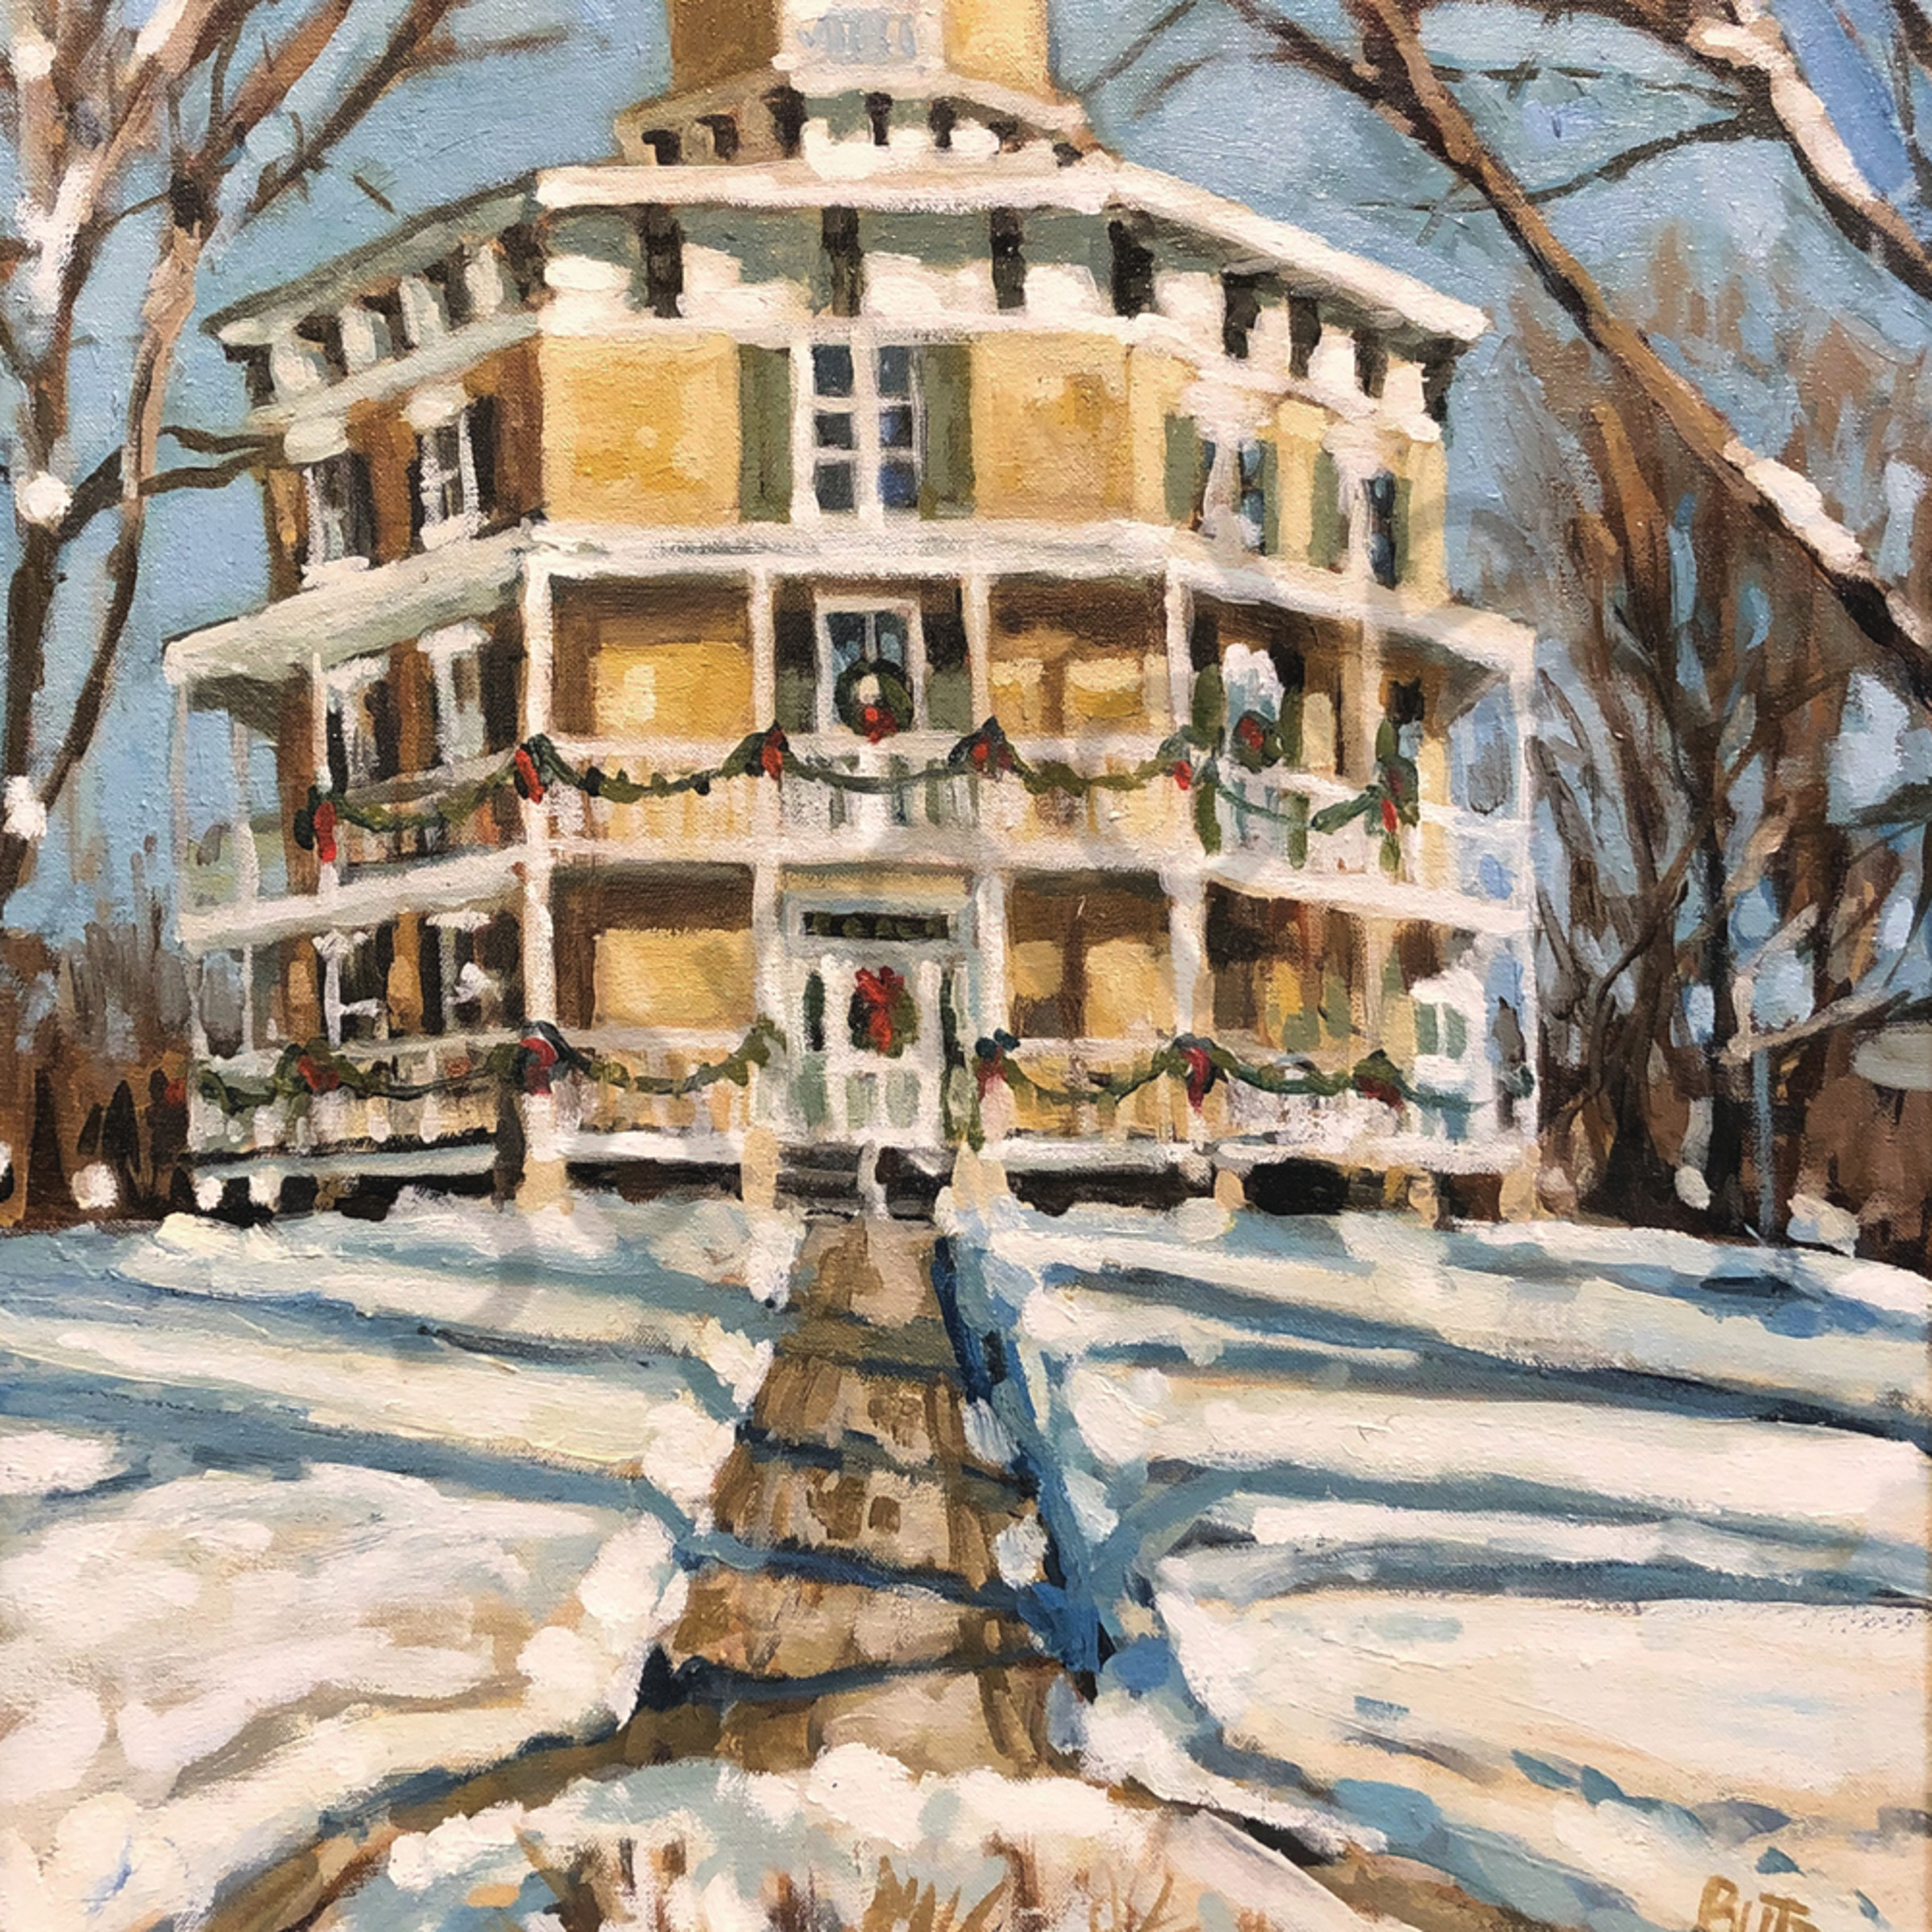 Octagon house in winter8x10 bvoqie